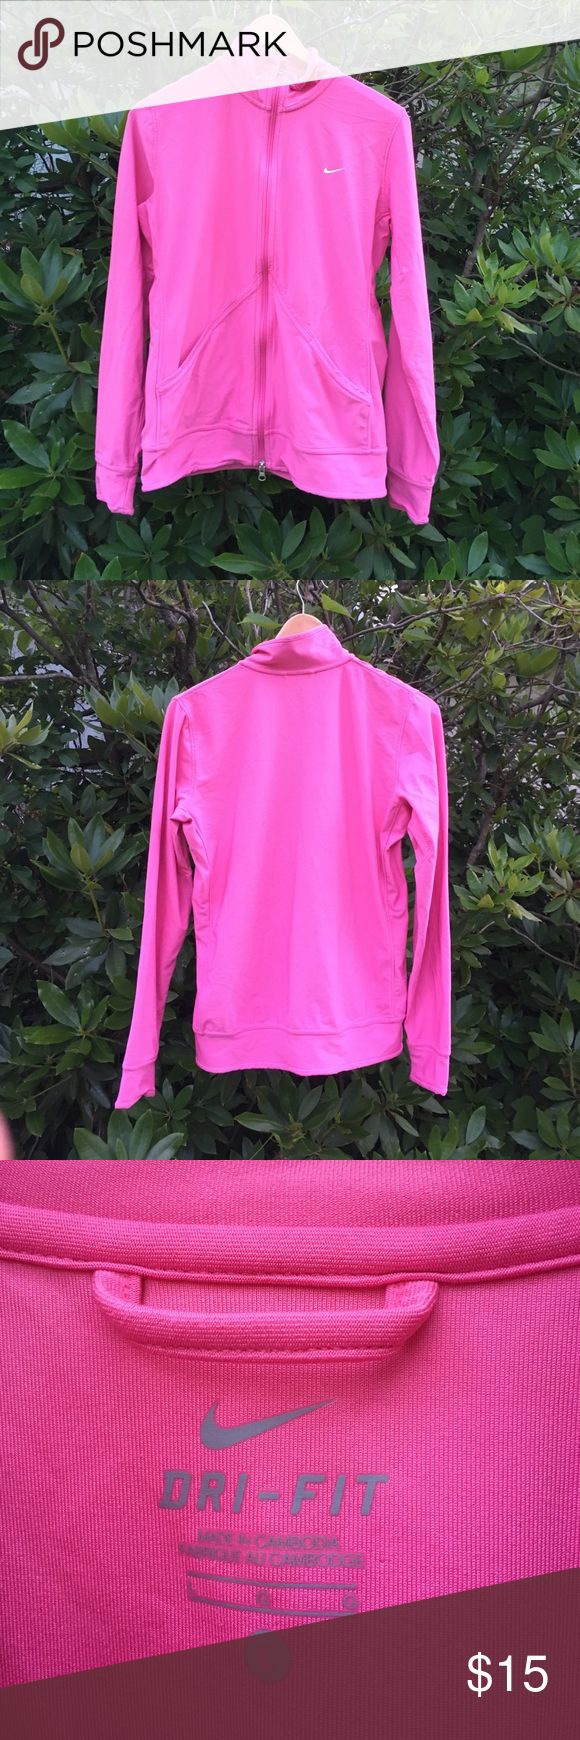 Nike Dri-fit womans pink workout zip up NIKE Dri-fit womans bright pink zip up workout top. Size large. Good used condition. Signs of wear may show. As-is. Great bright color. NIKE check embossed in white. Two front pockets. Long sleeves. Polyester spandex blend. Great top! Nike Tops Sweatshirts & Hoodies